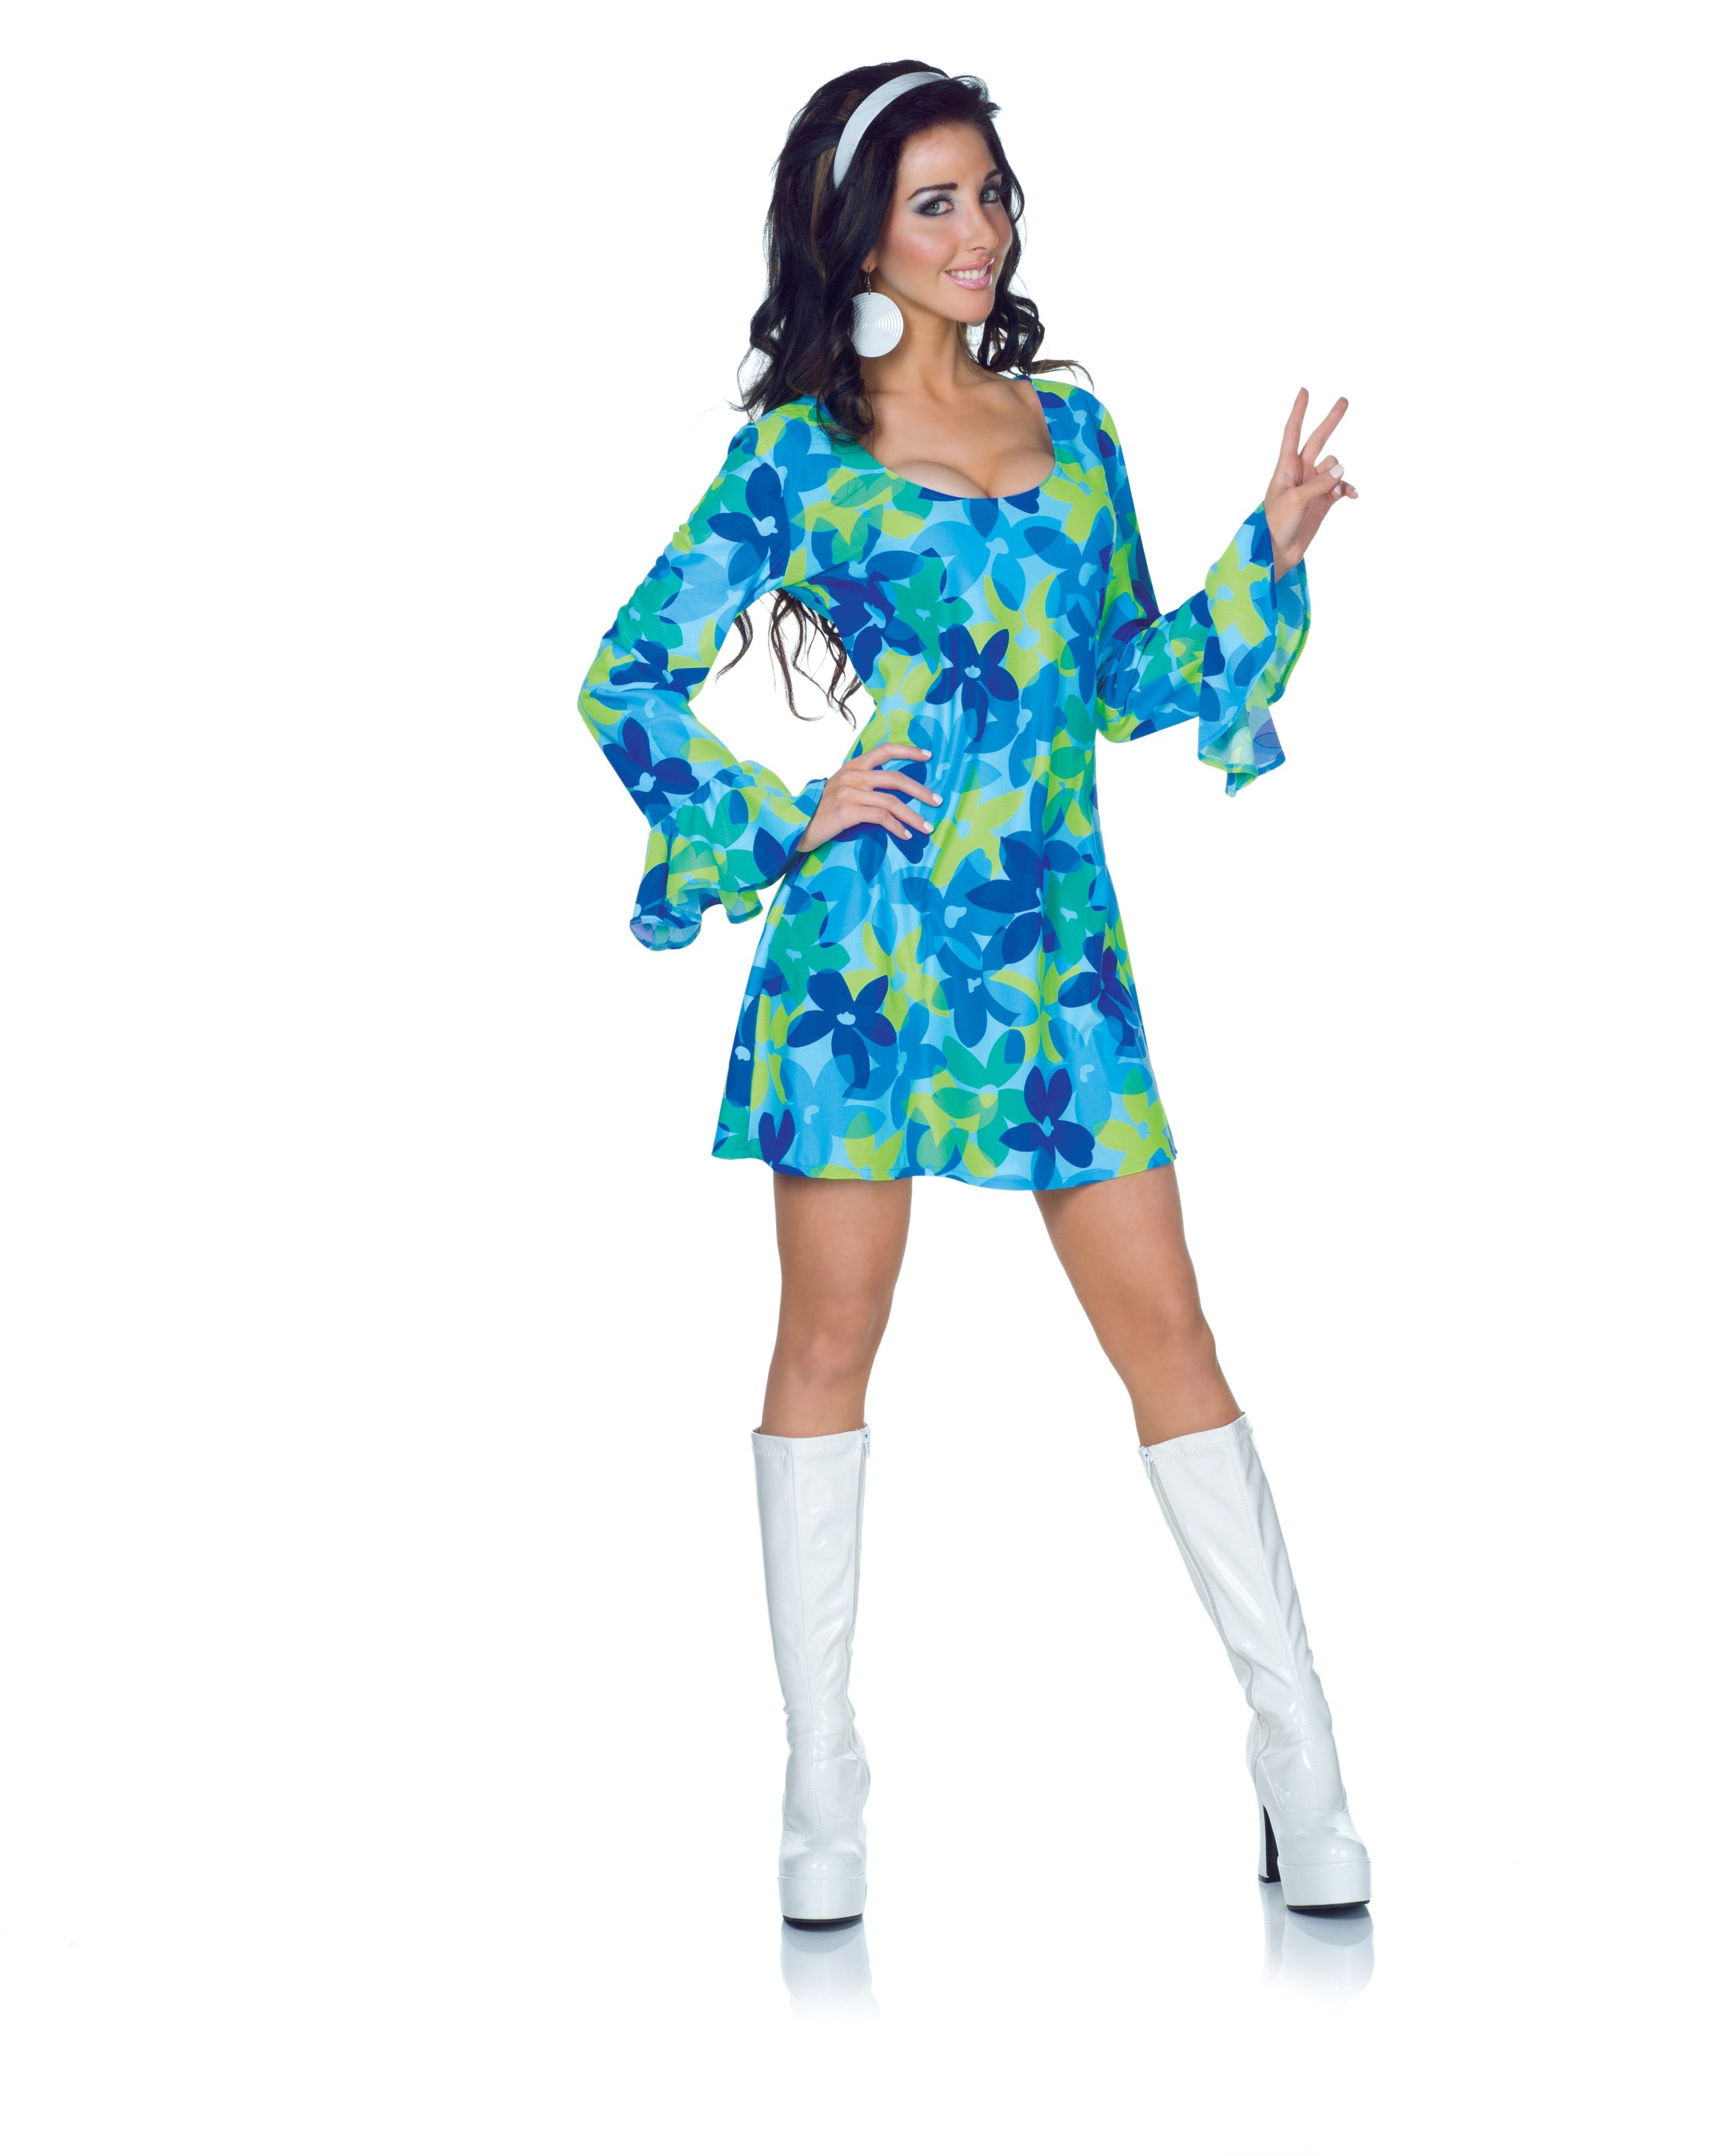 Pin by Yvonne Perez on PARTY: 60\'s flower power | Pinterest | 80s ...